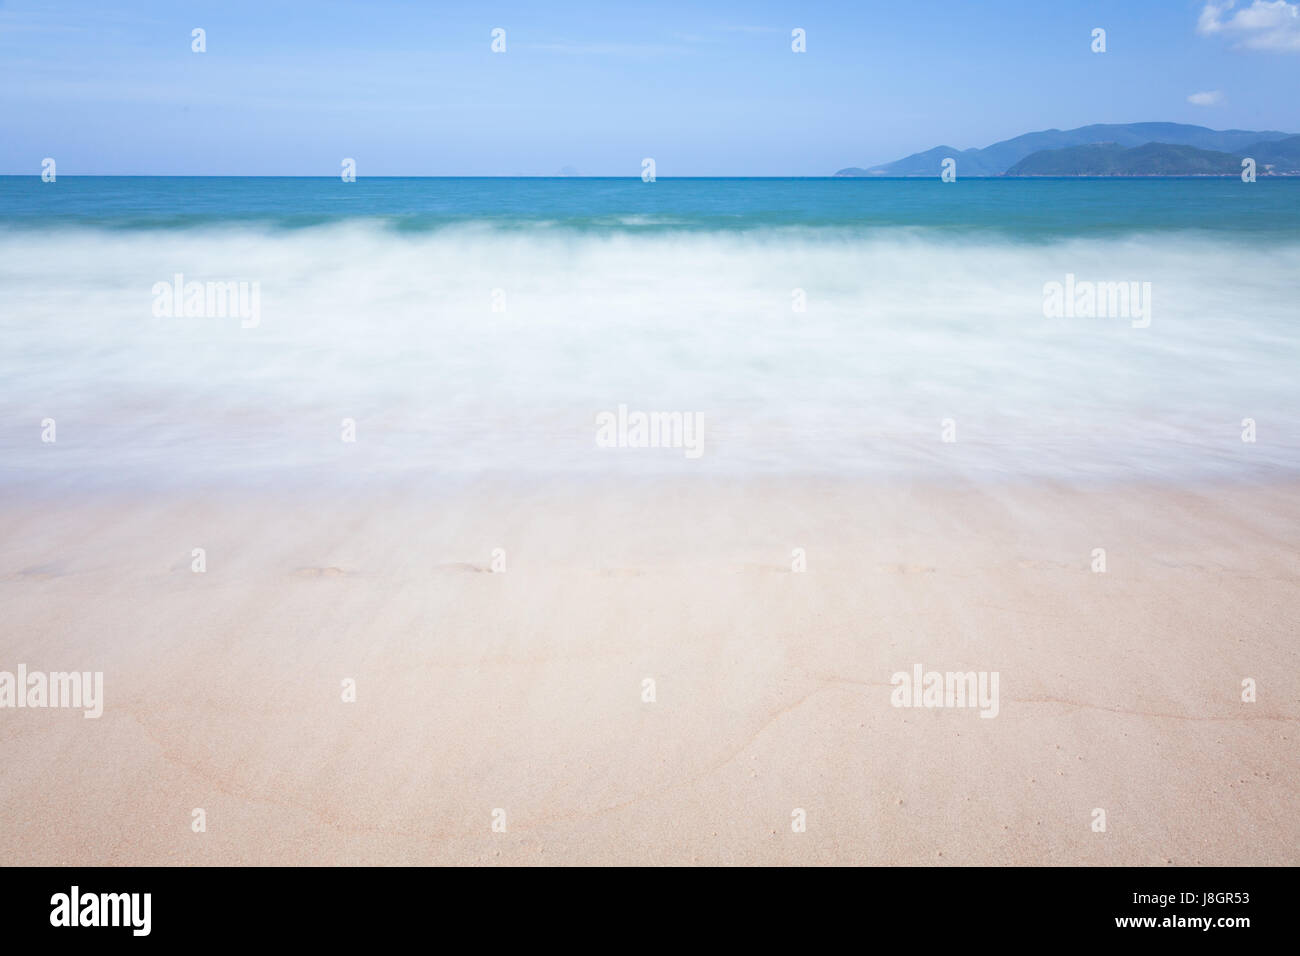 Blurred sea waves motion, Nha Trang, Vietnam. Stock Photo